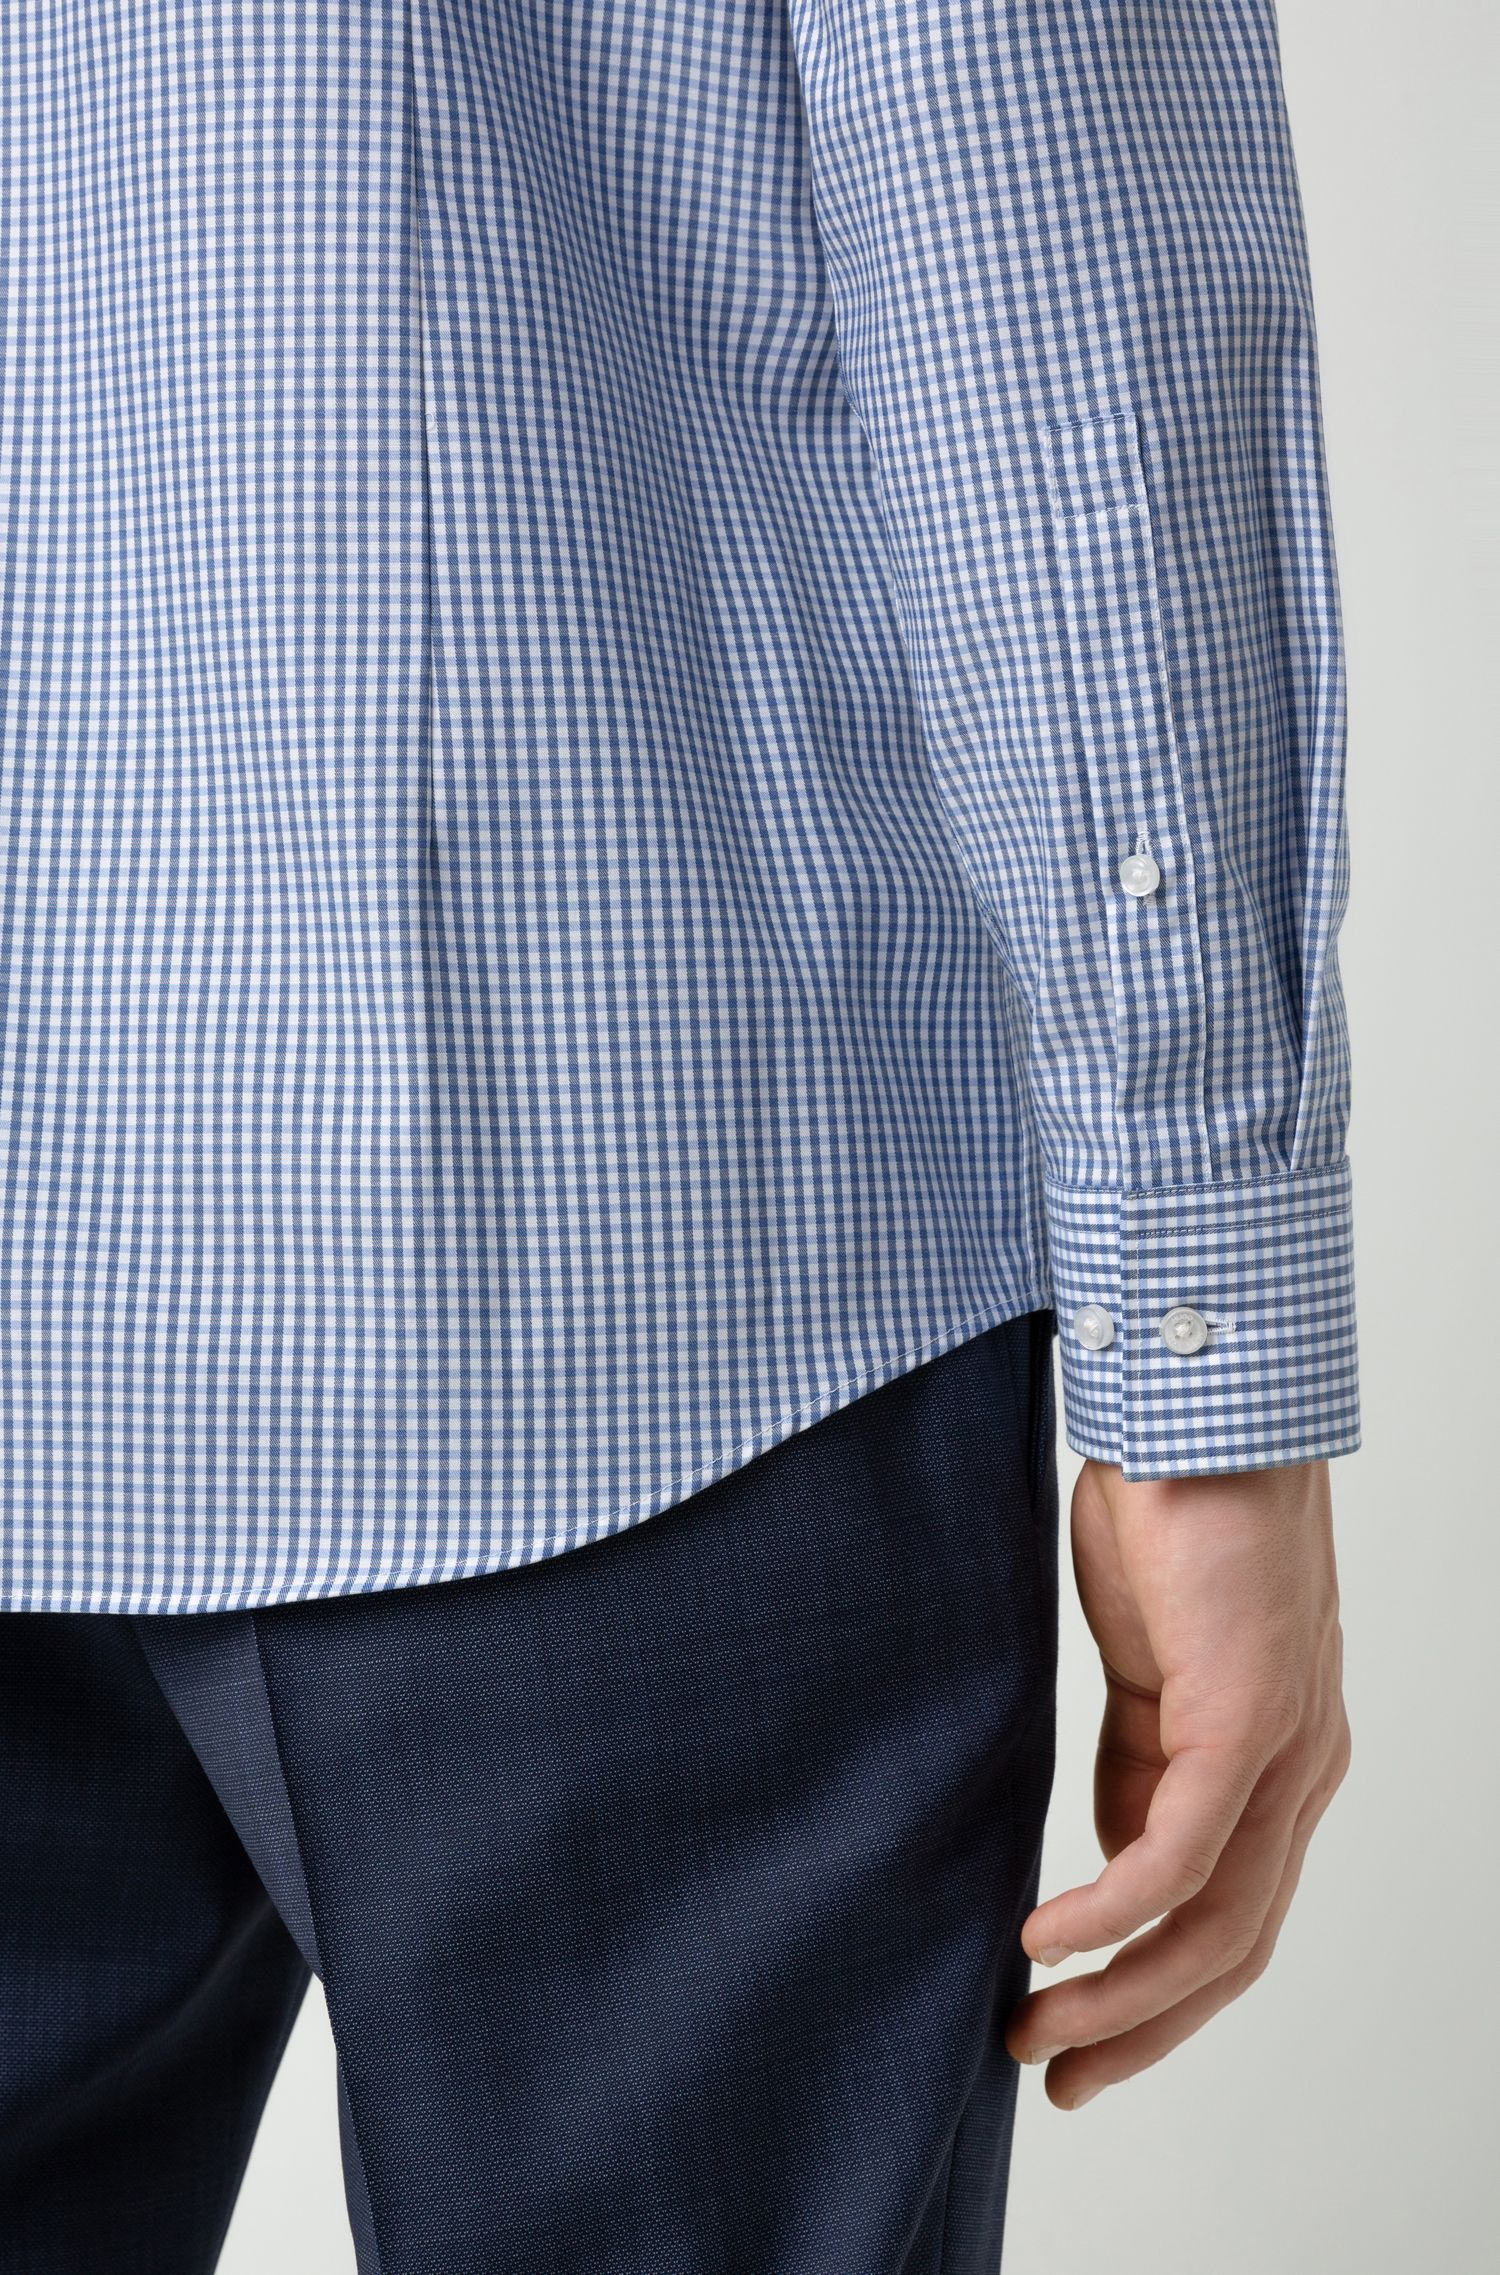 Slim-fit shirt in checked easy-iron cotton, Patterned